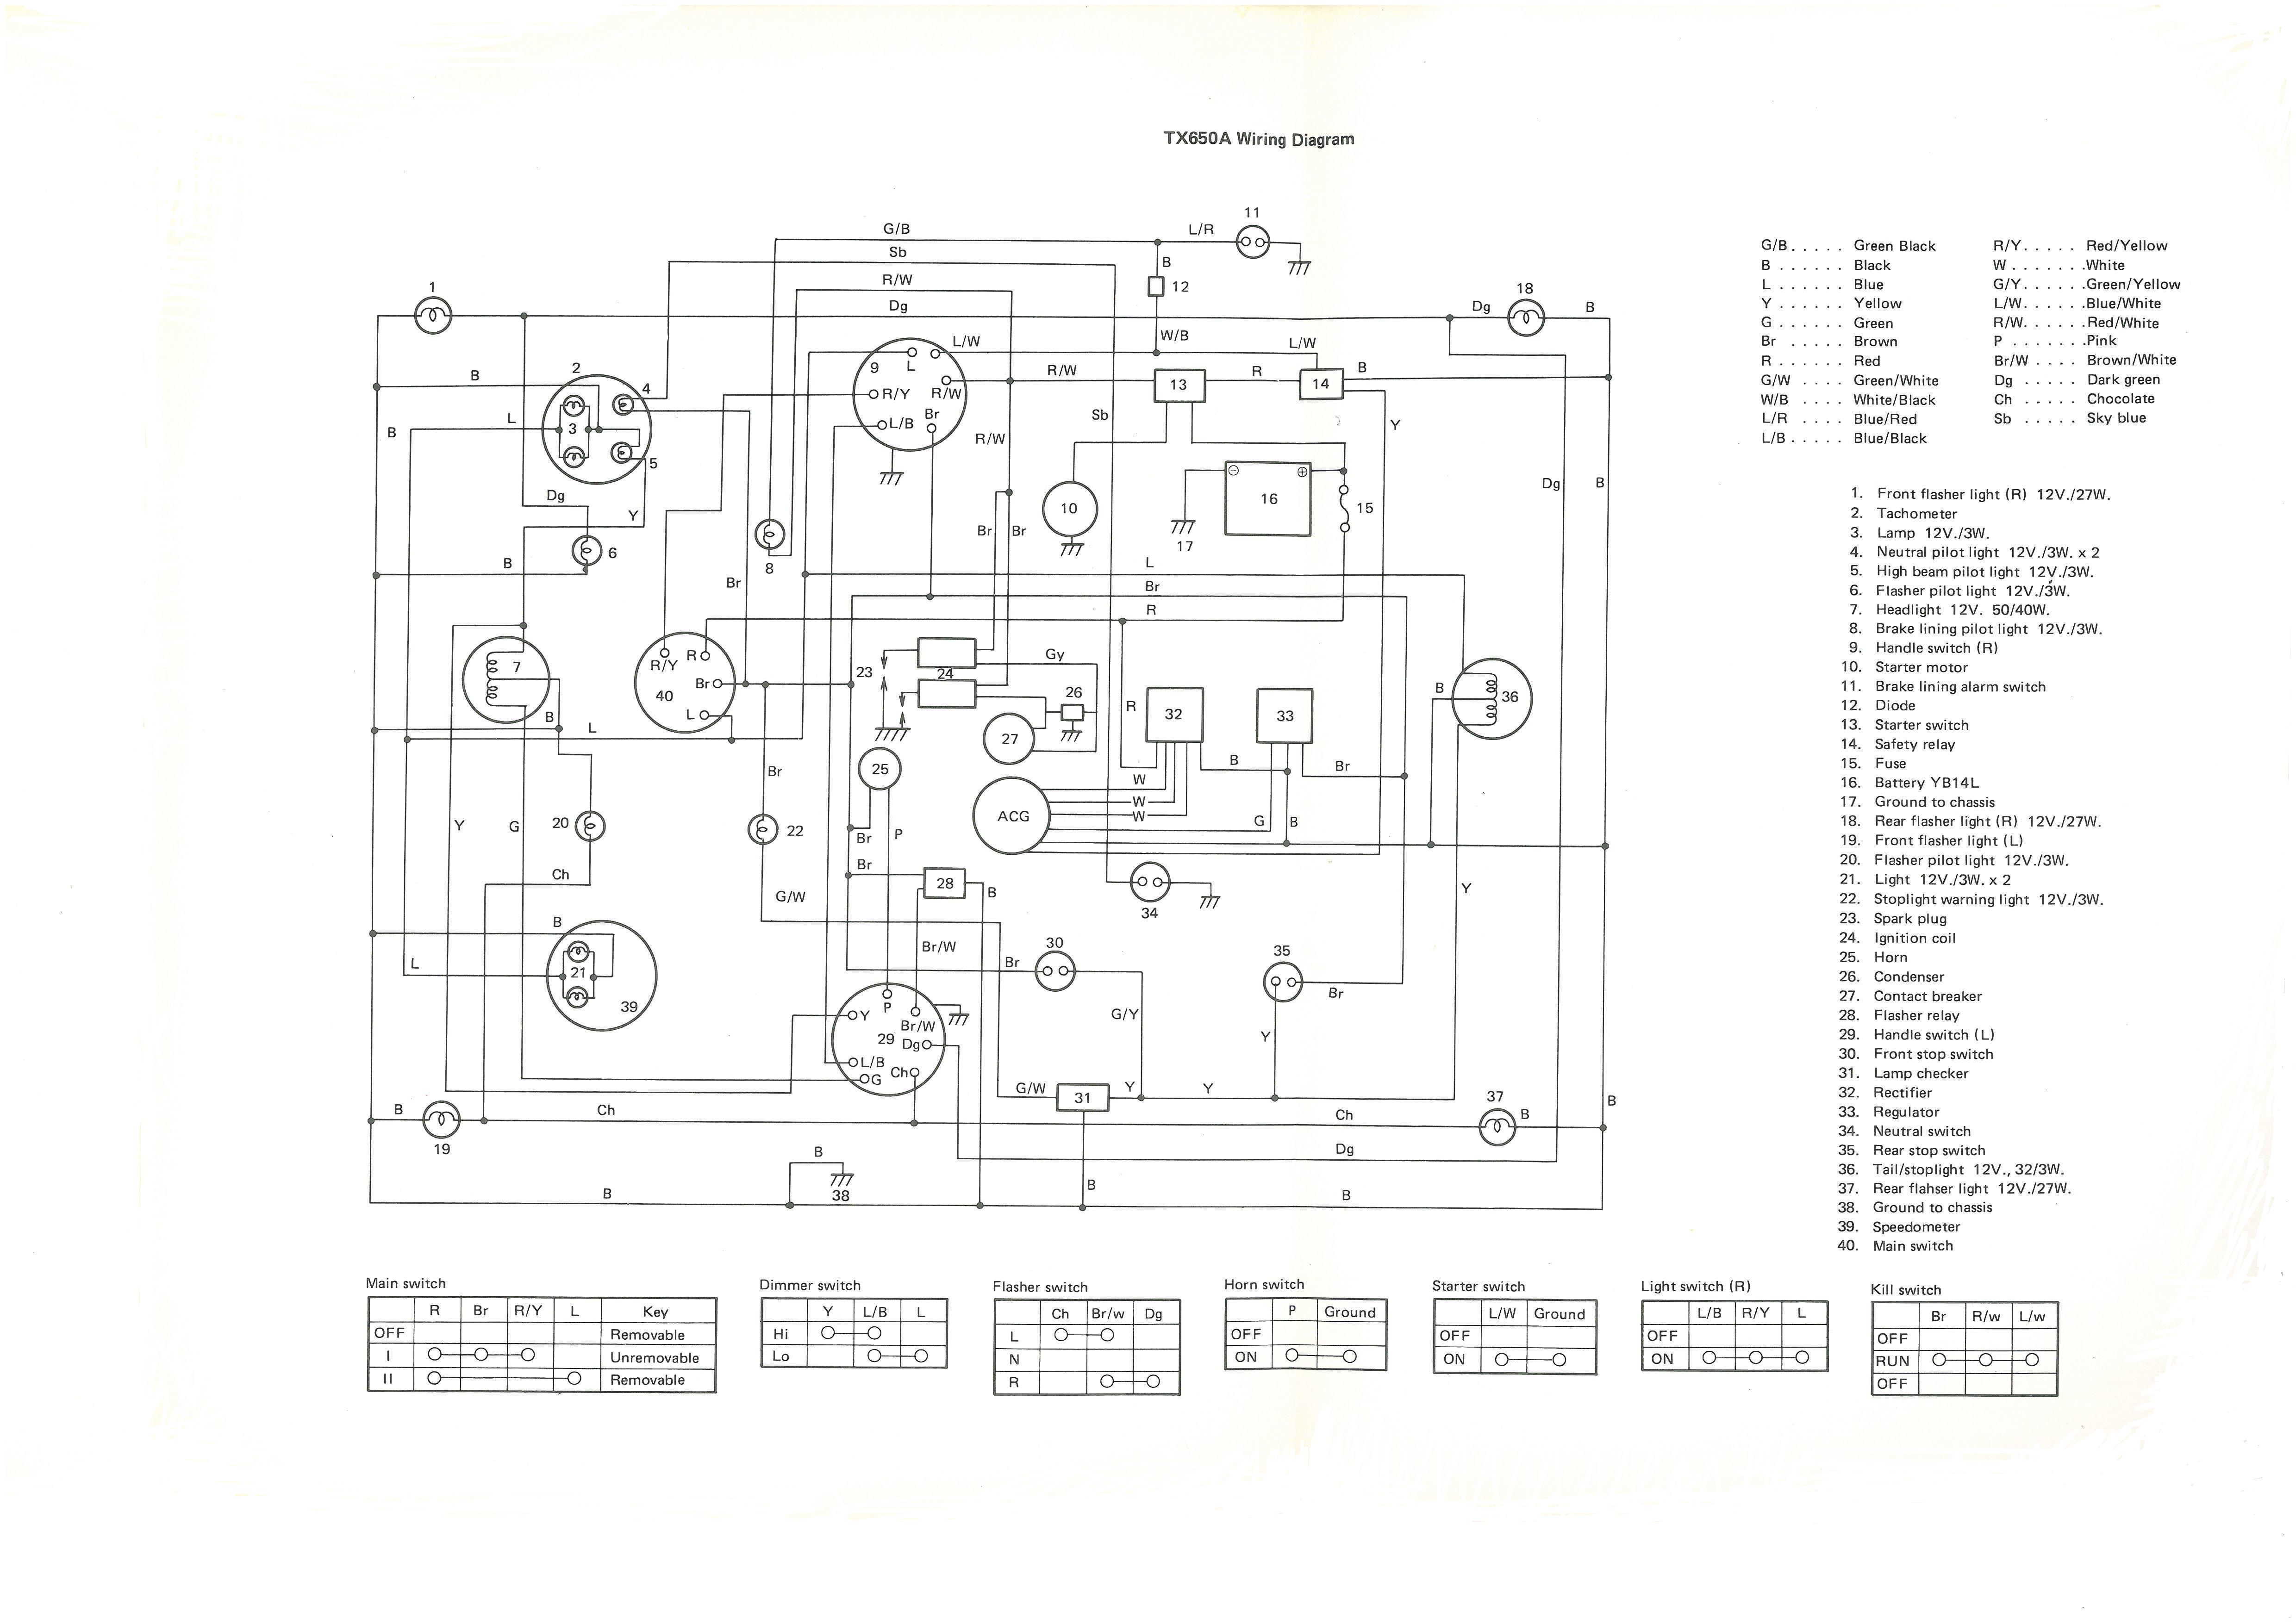 Yamaha Xs750 Wiring Diagram Explained Diagrams Xs850 Only 96 Atv 250 Moto Four Trusted It490